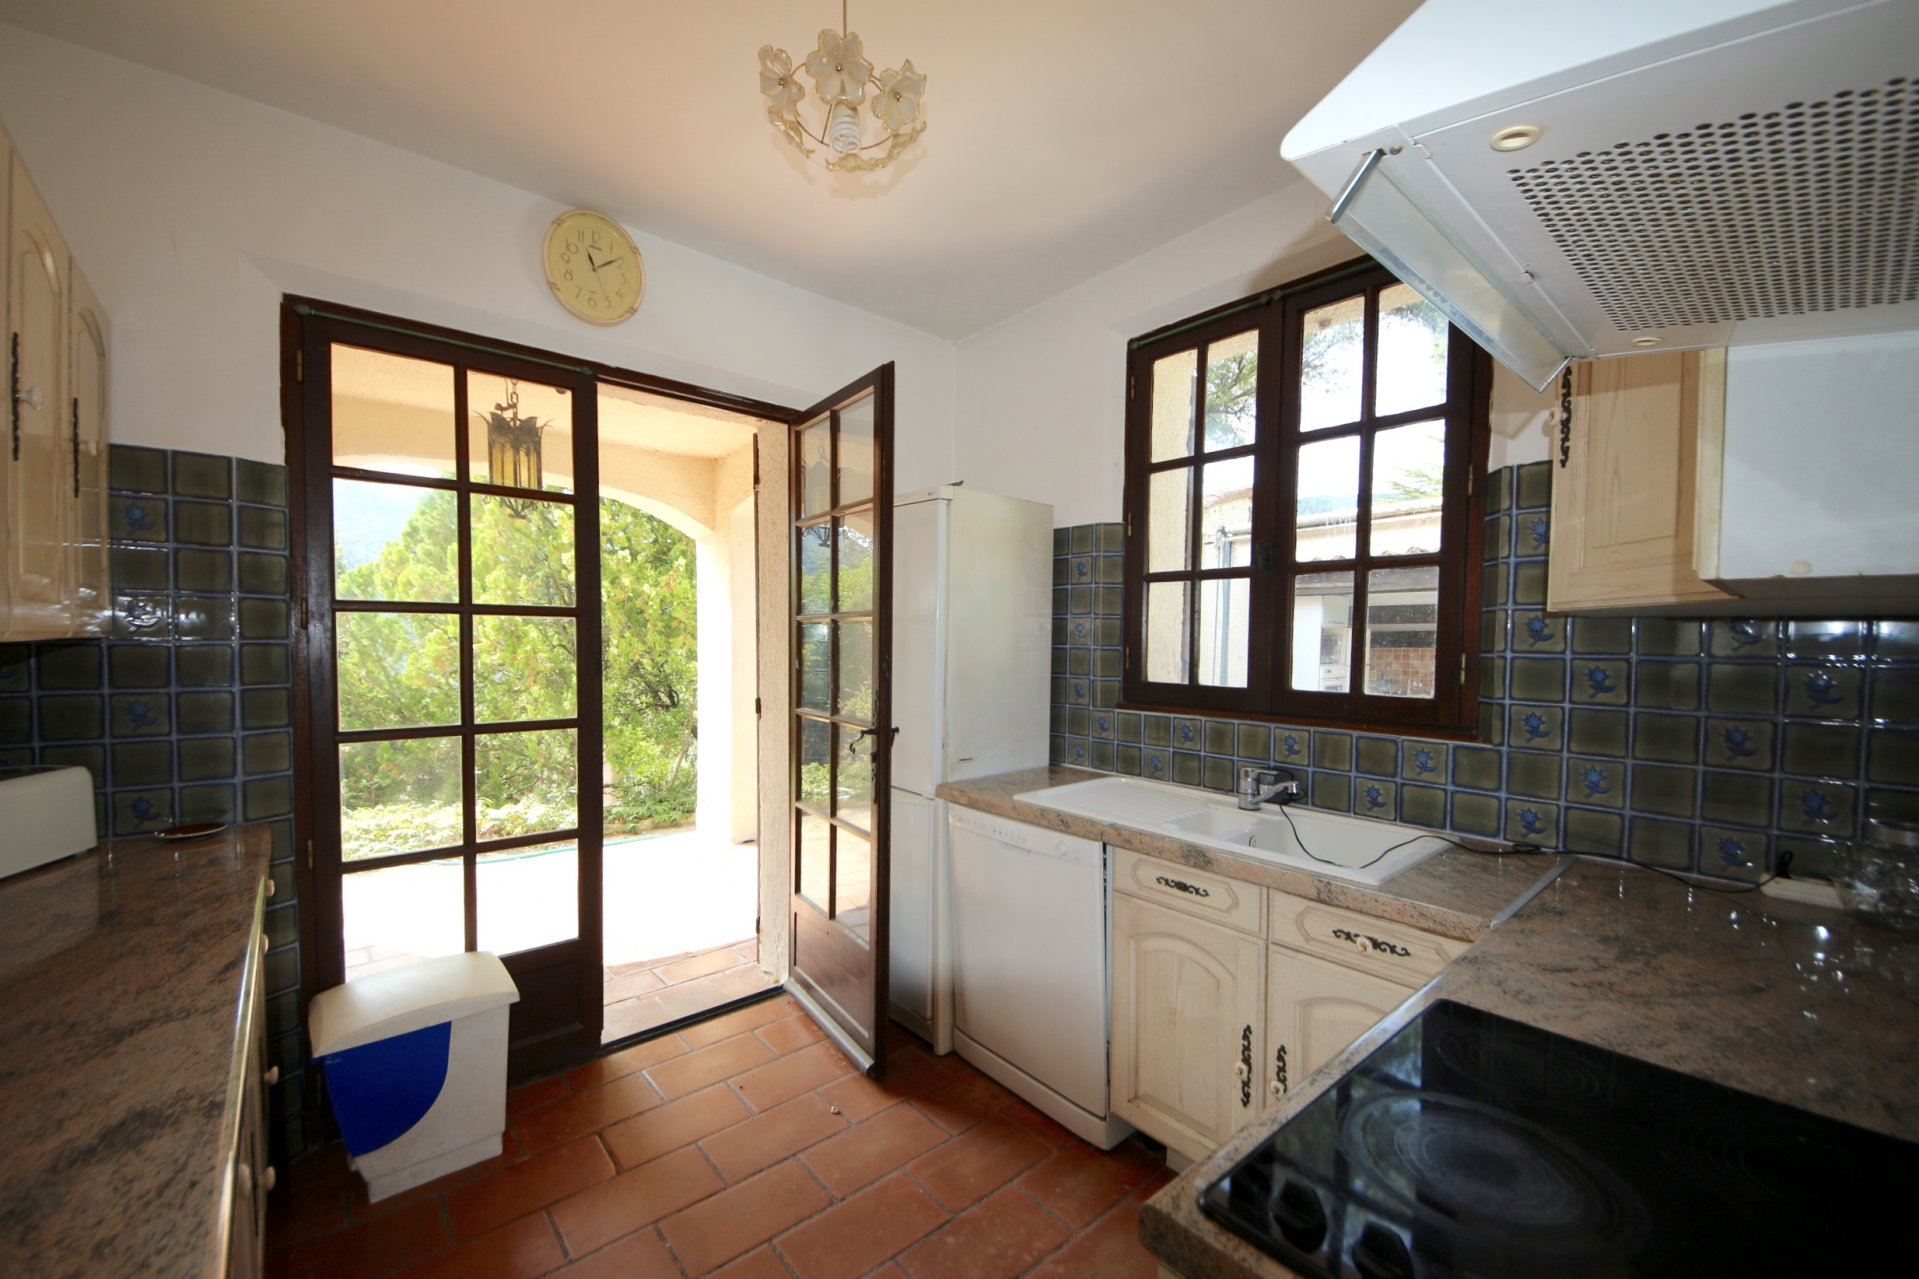 Provencal bastide in a calm and residential area at 20mn from Cannes